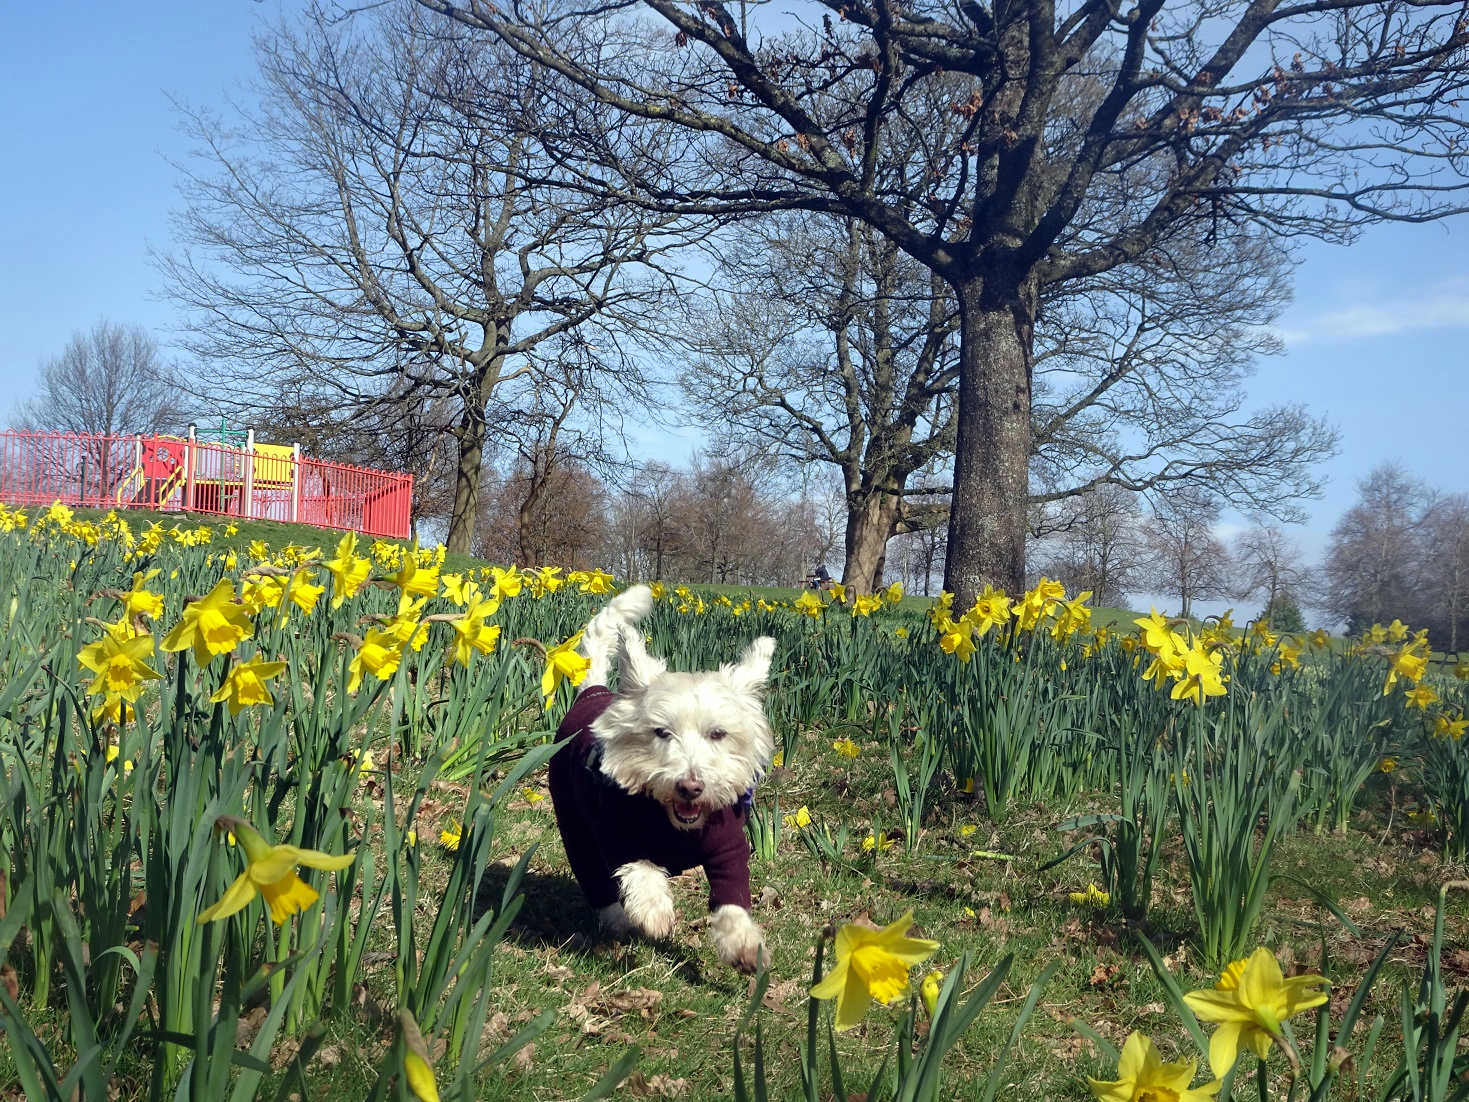 poppy the westie playing in the dafodils